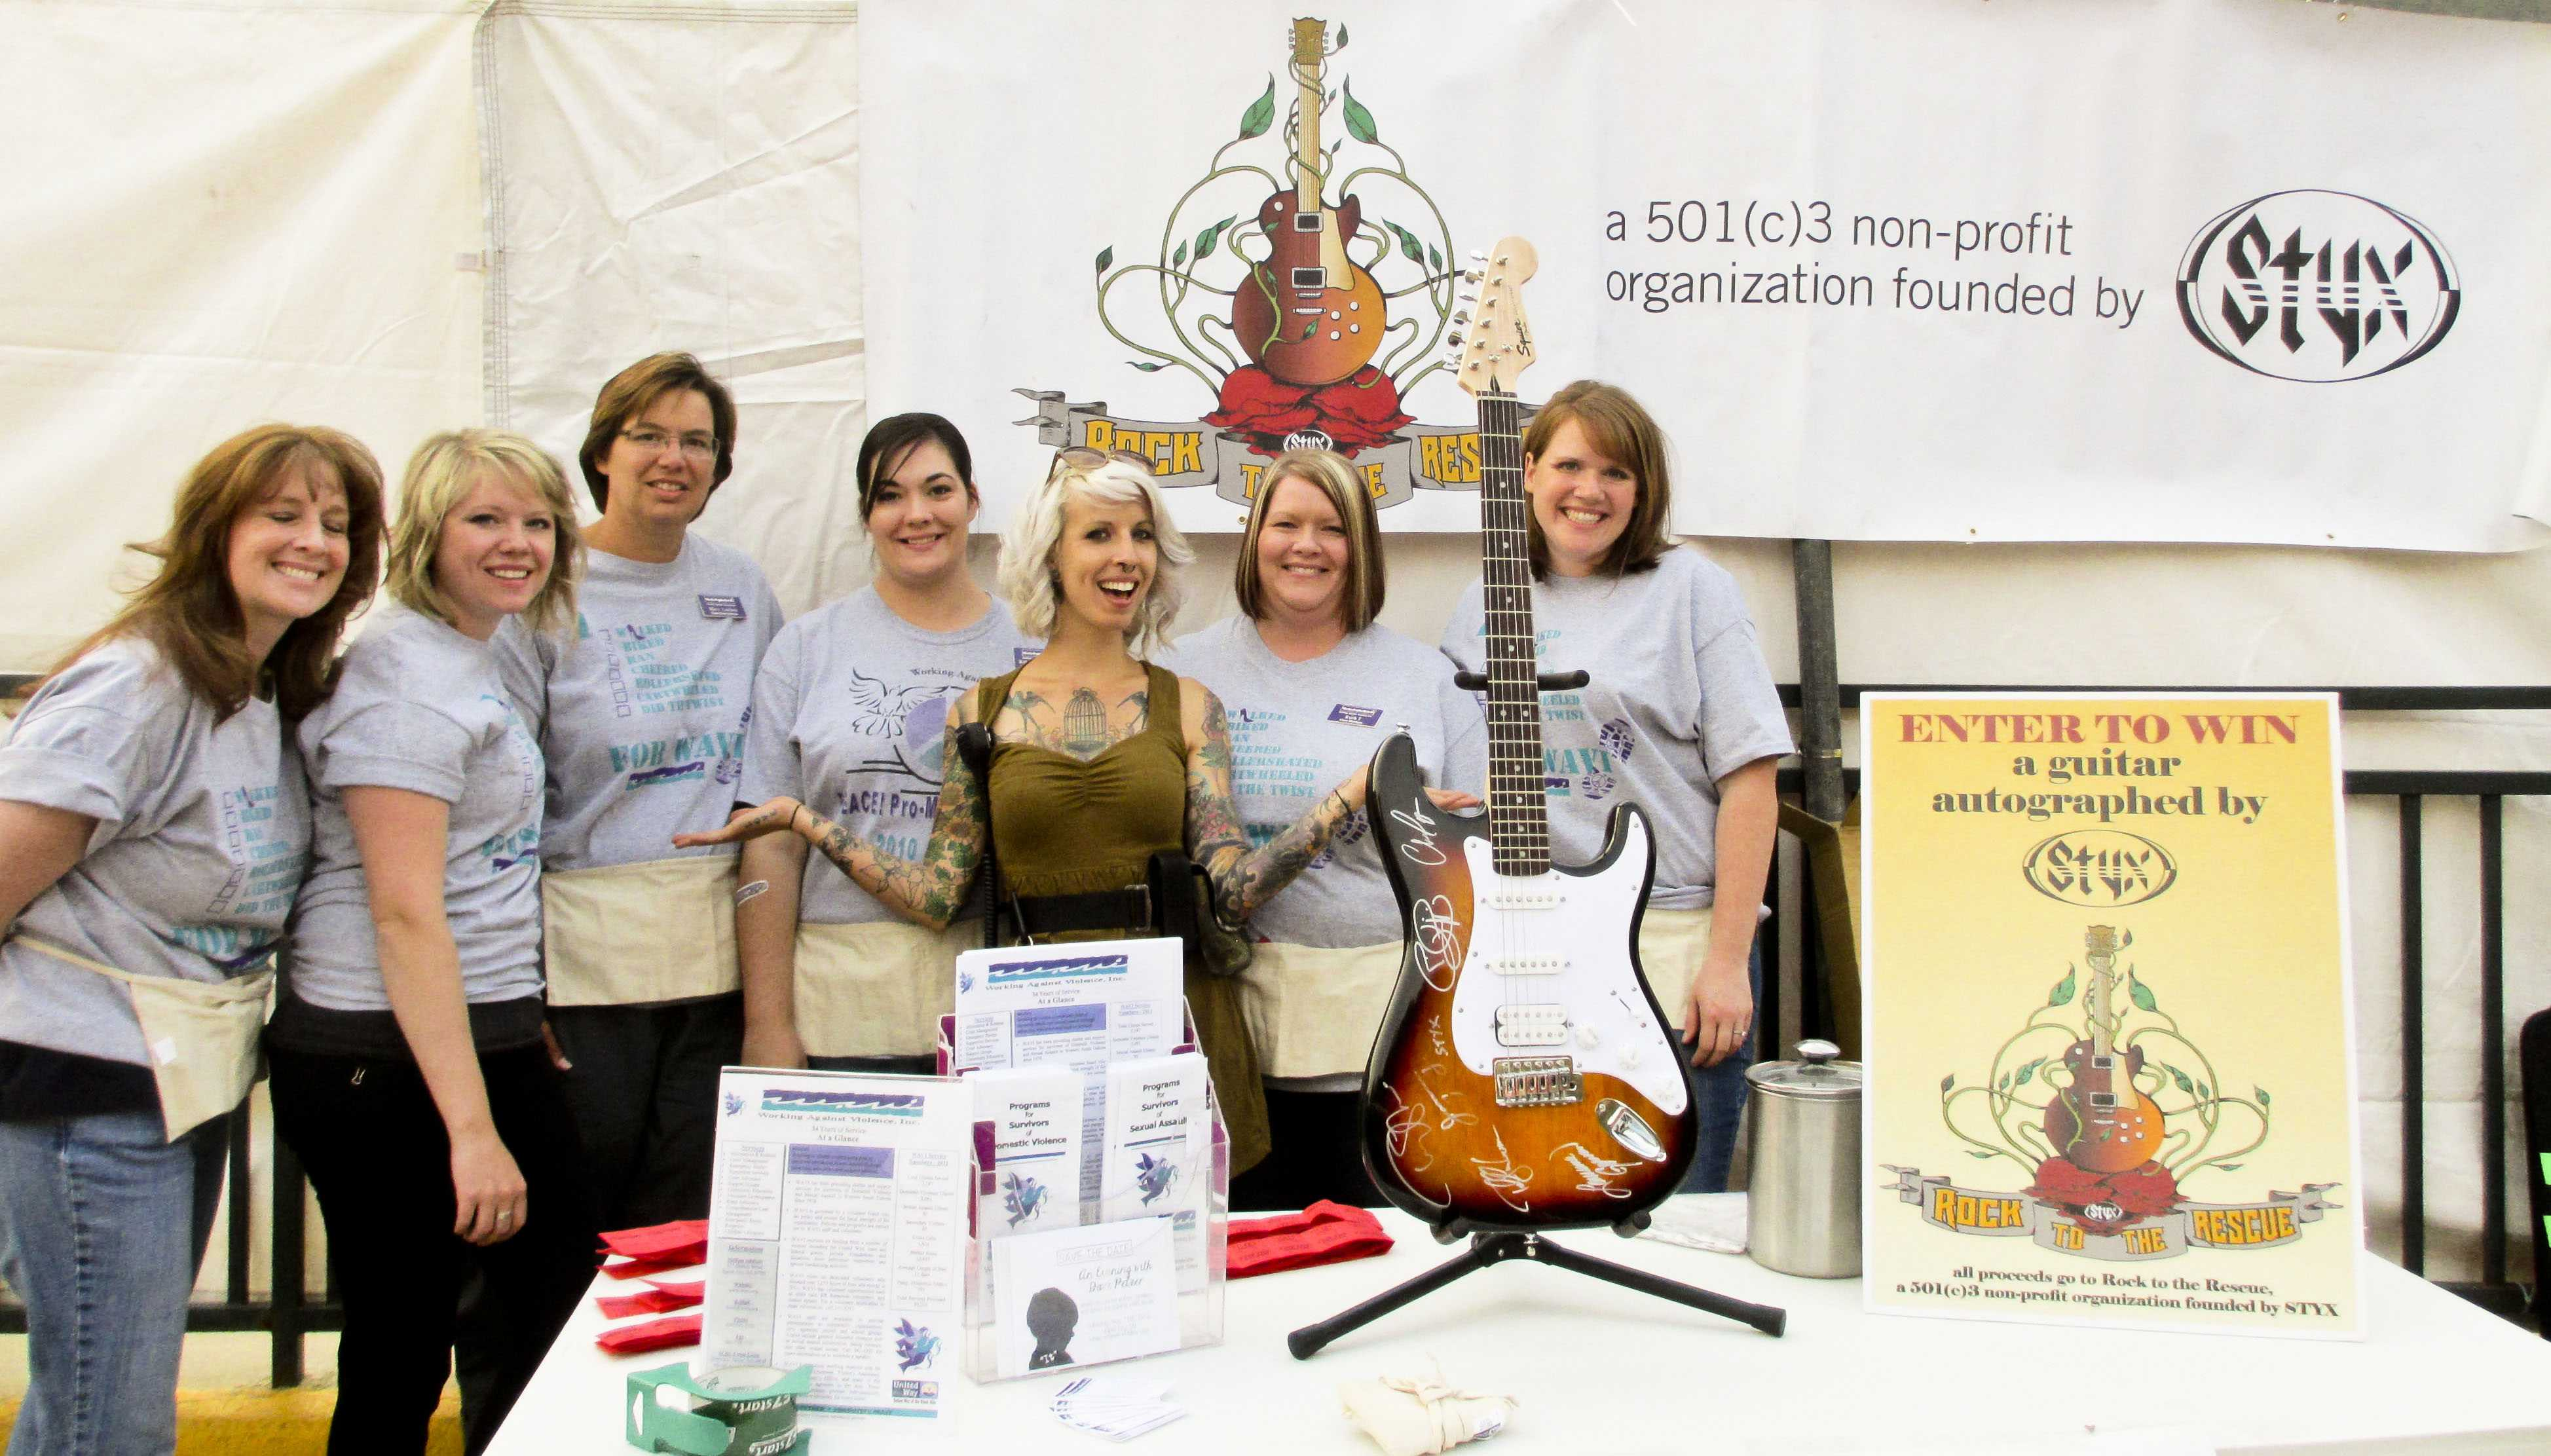 Hannah Shaw executive director of Rock to the Rescue (center) partner with Rapid City WAVI volunteers from Left: Kelley Crane, Mallory Heutzenroeder, Mary Corbine (Executive Director of WAVI), Rebekkah Kruse, Ruth Torala and Morgan VonHaden to manage raffle ticket sales.